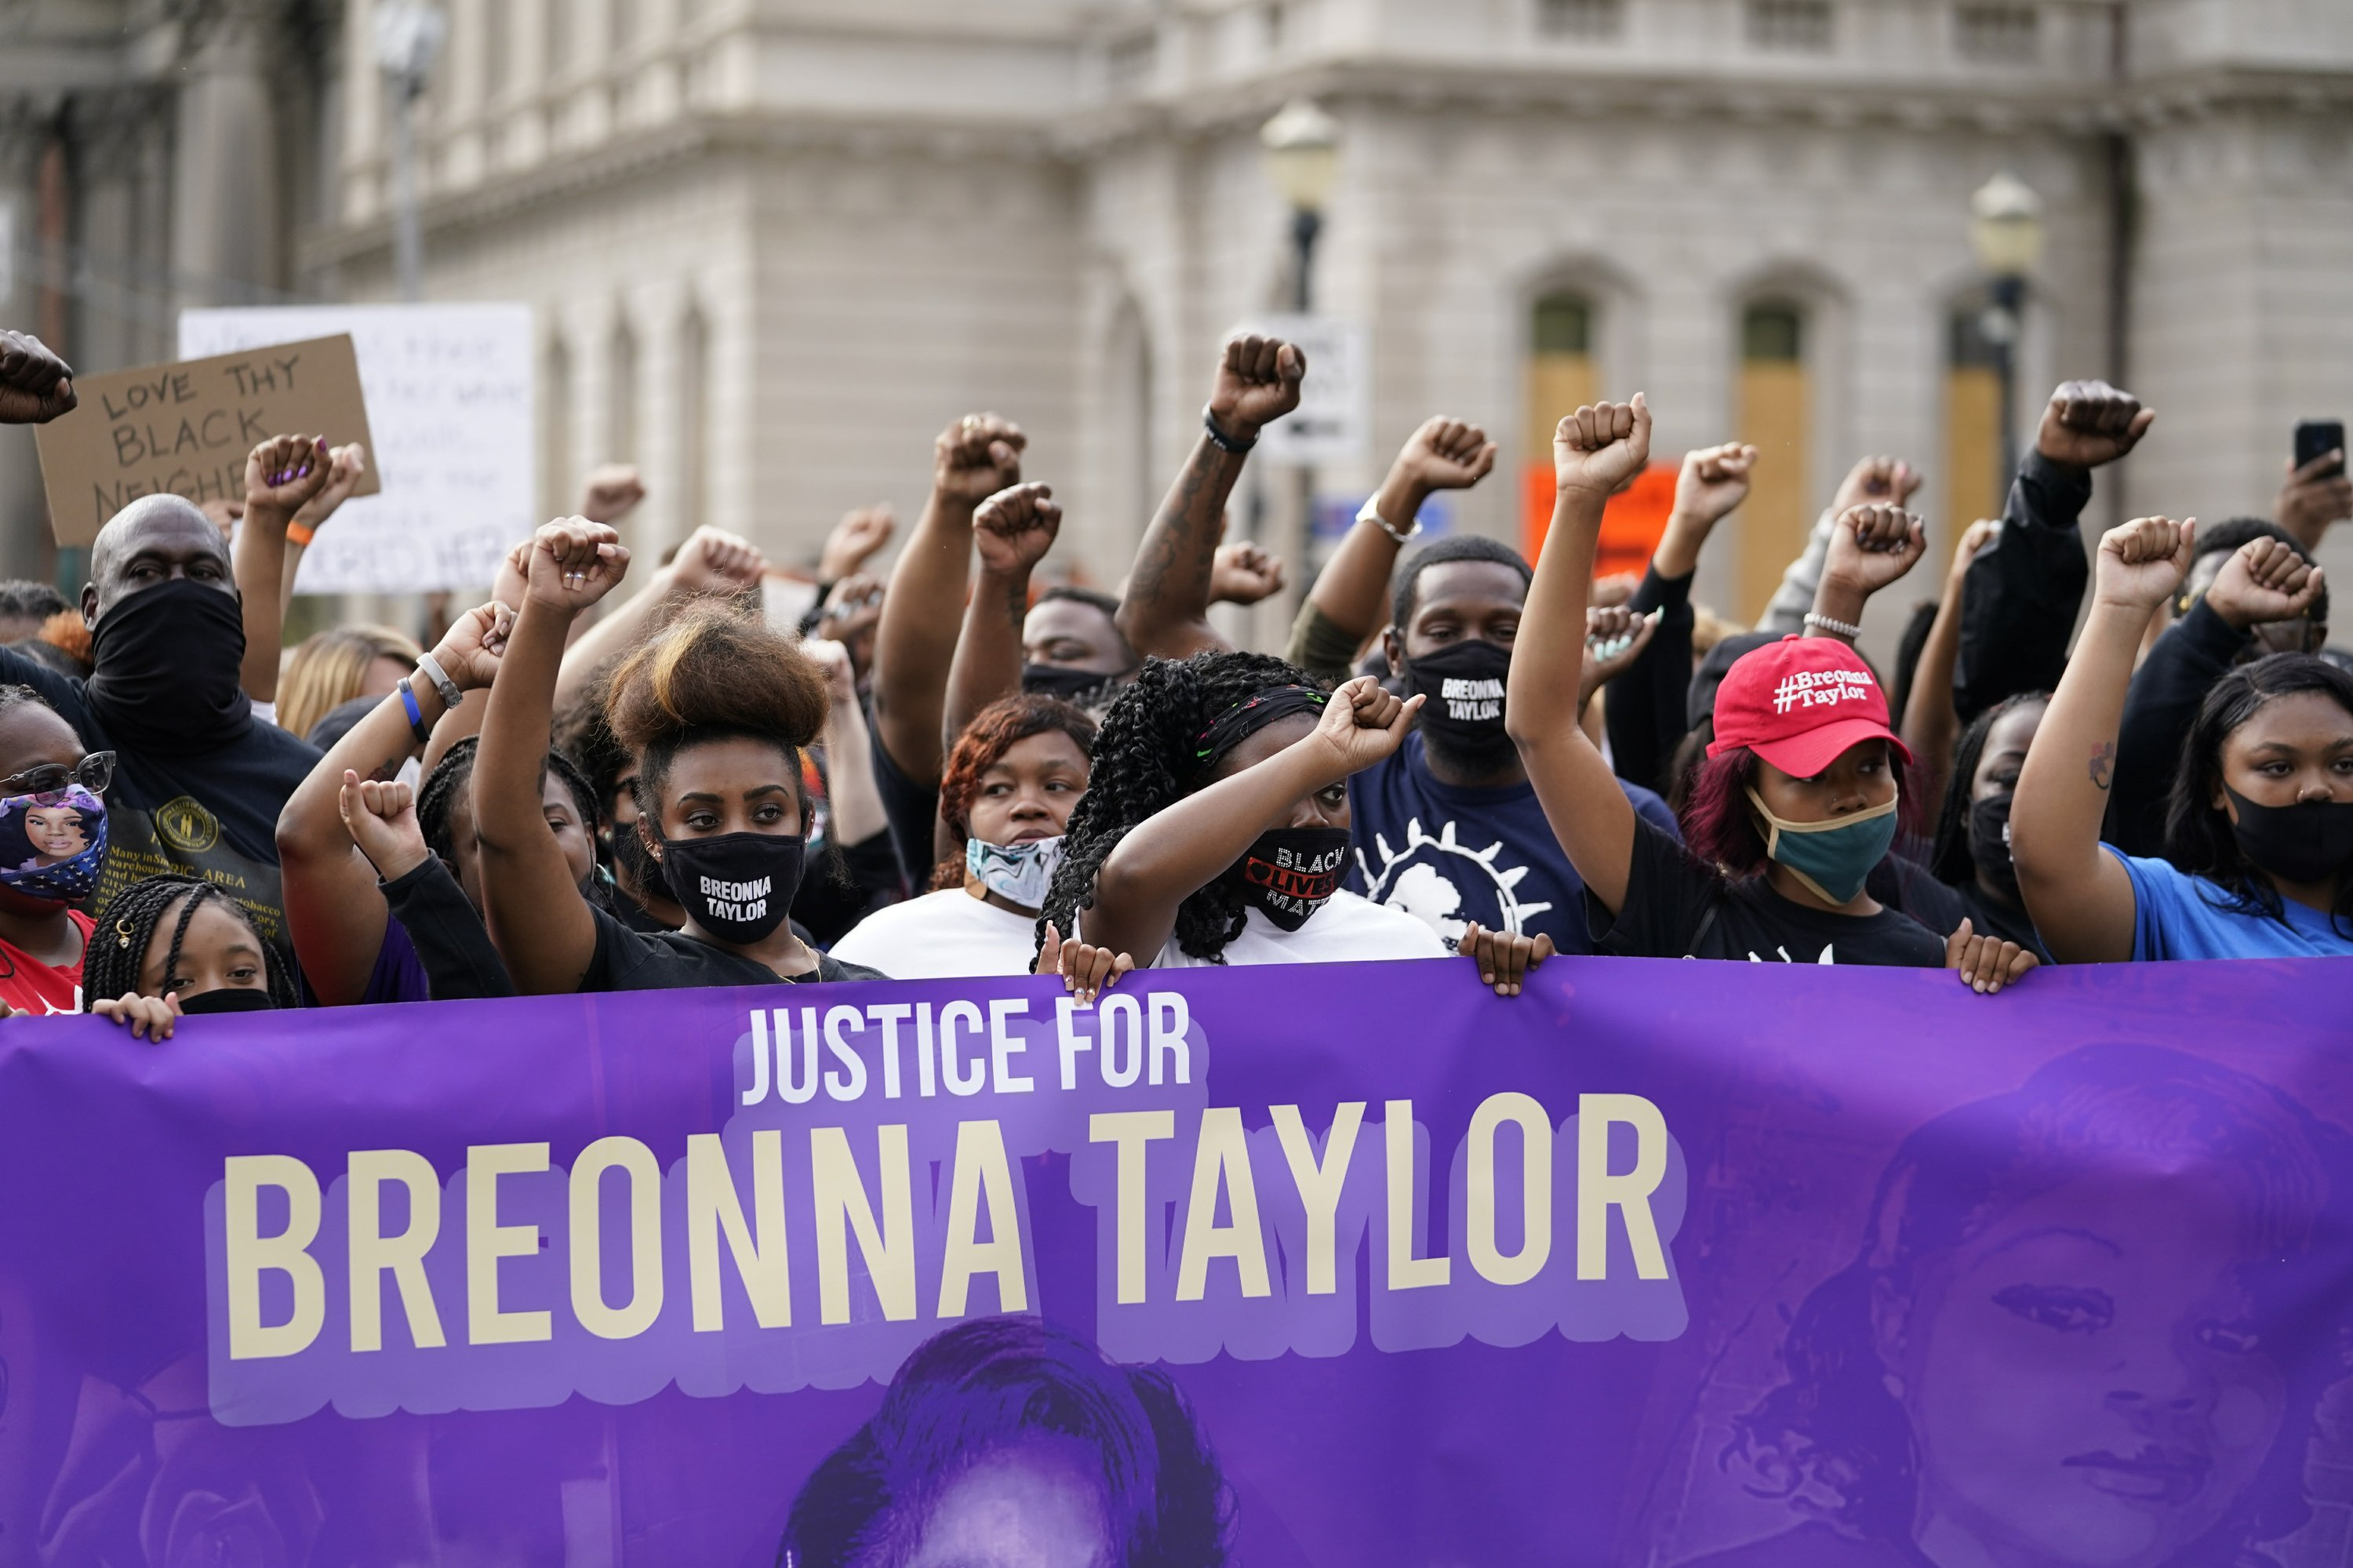 Police release details of Breonna Taylor investigation